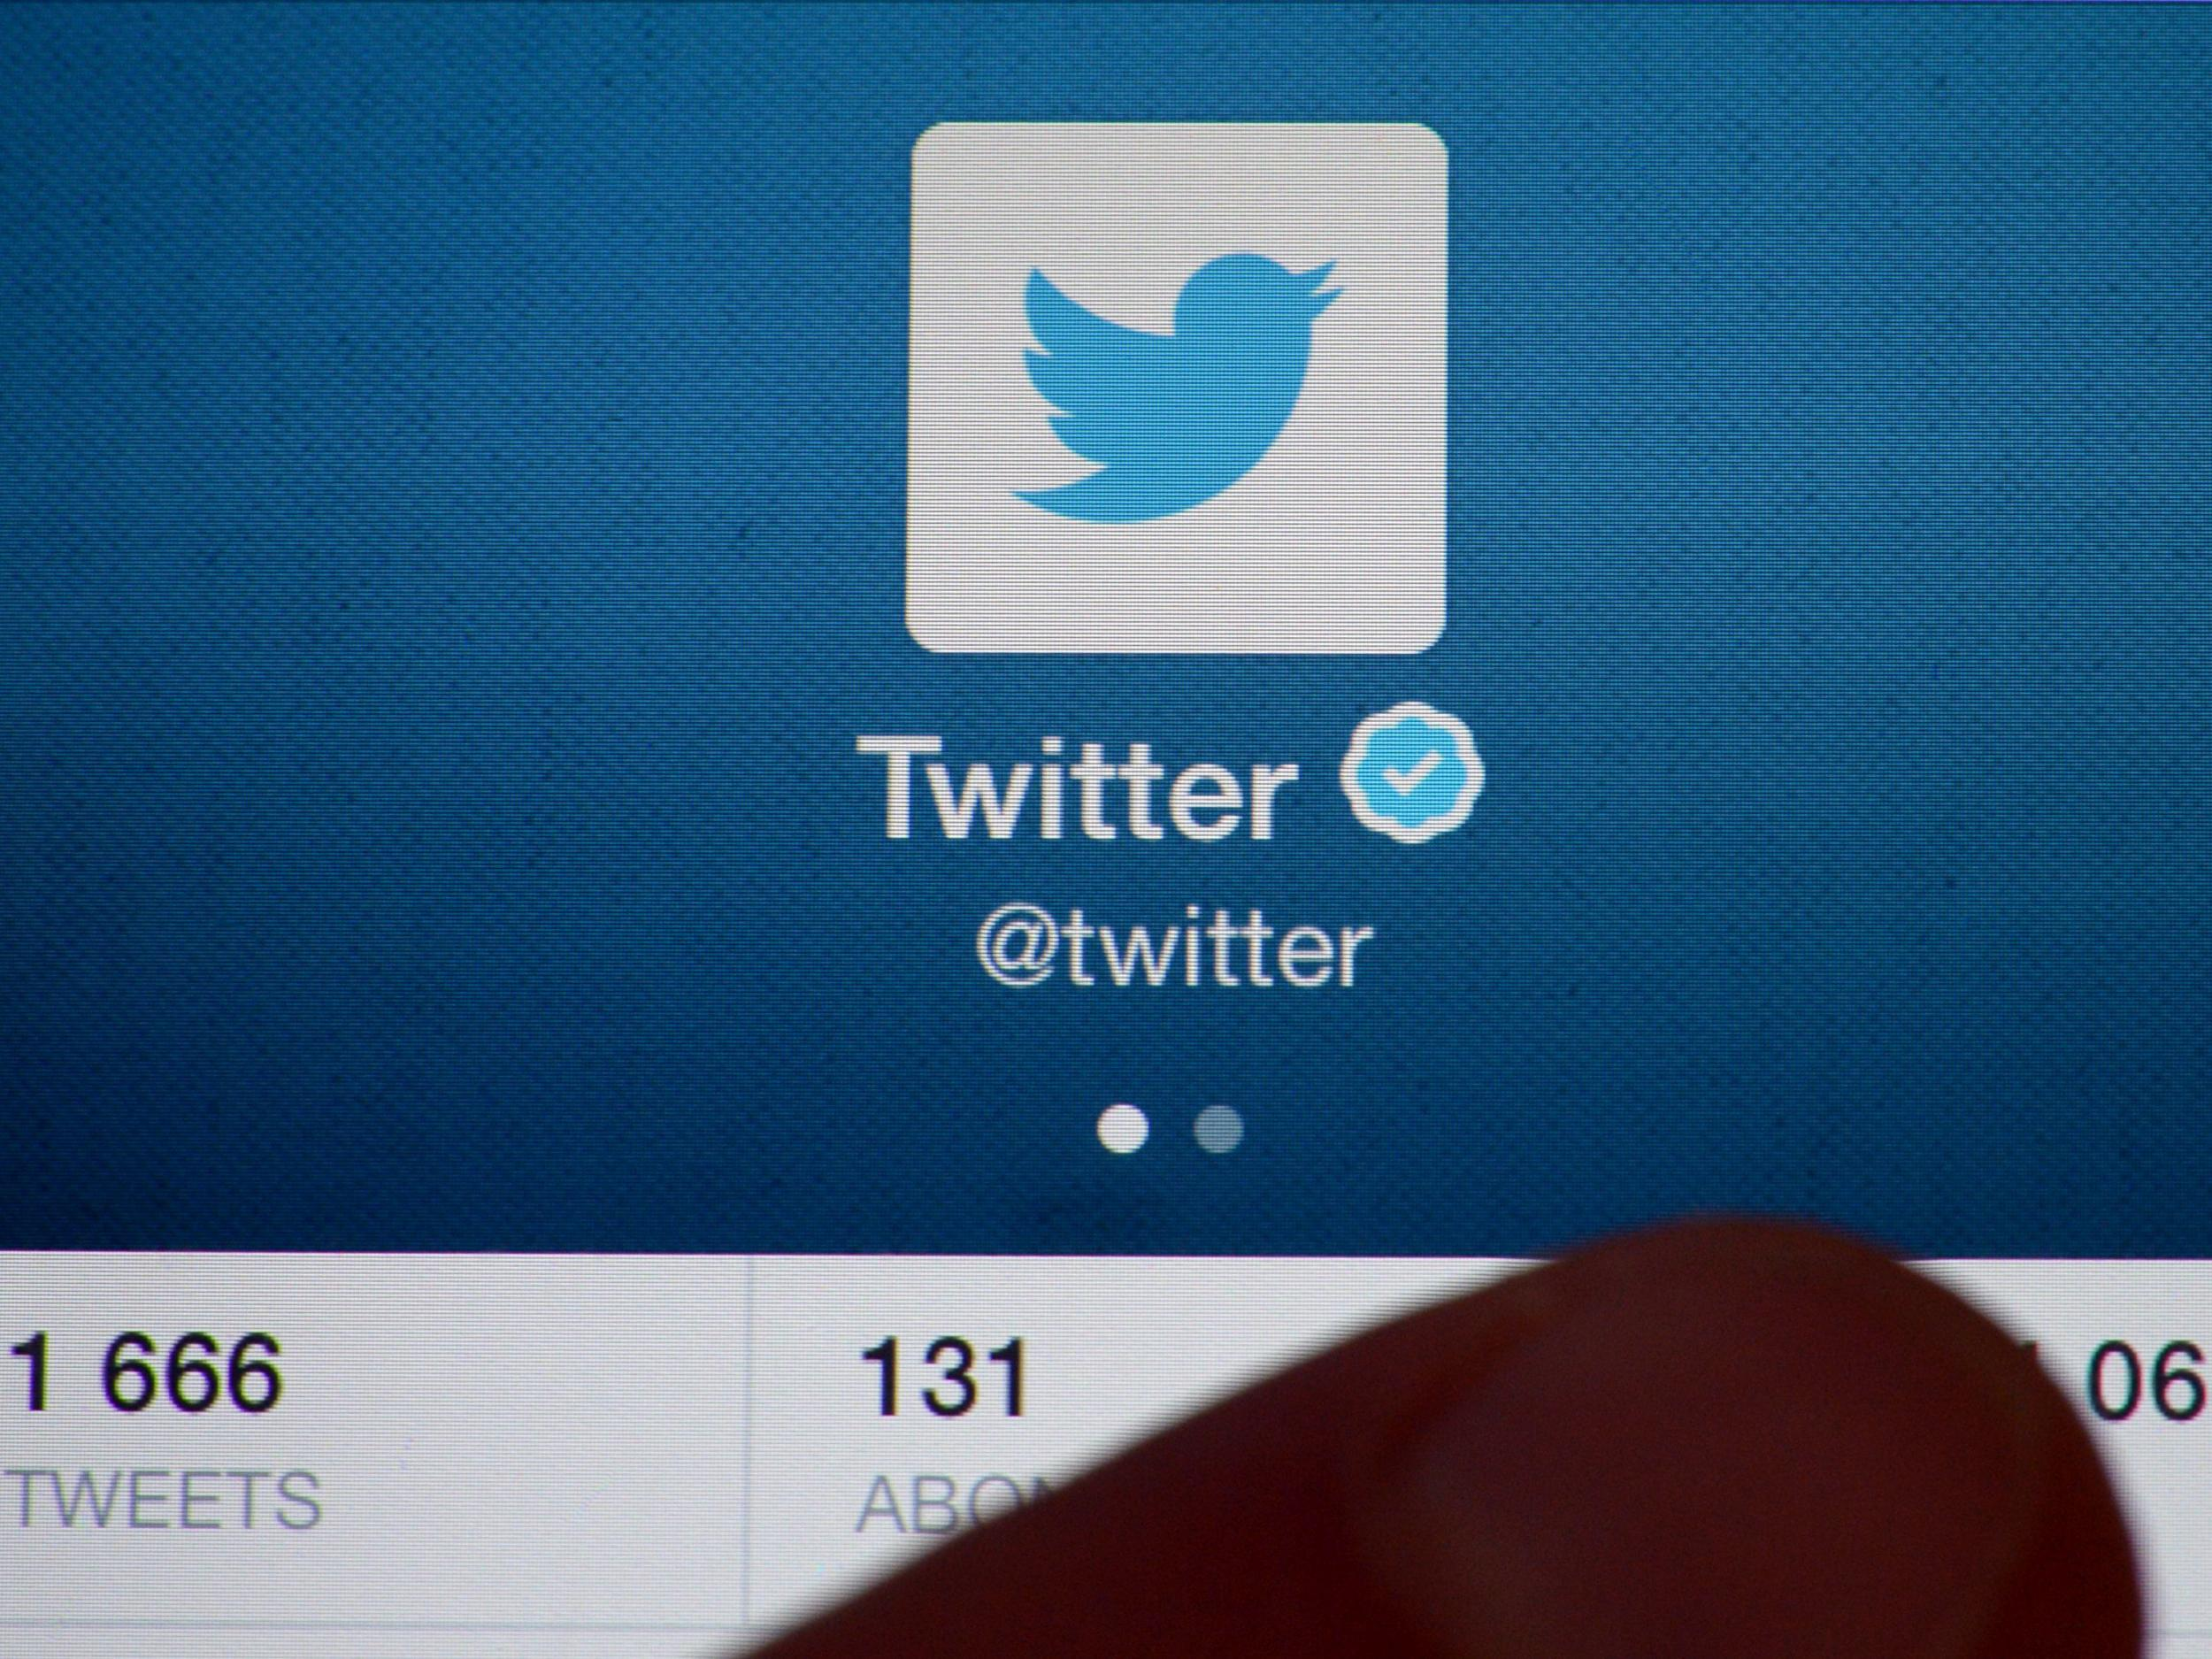 019d97b333b41 Twitter will hide more sensitive content as part of new safety push ...